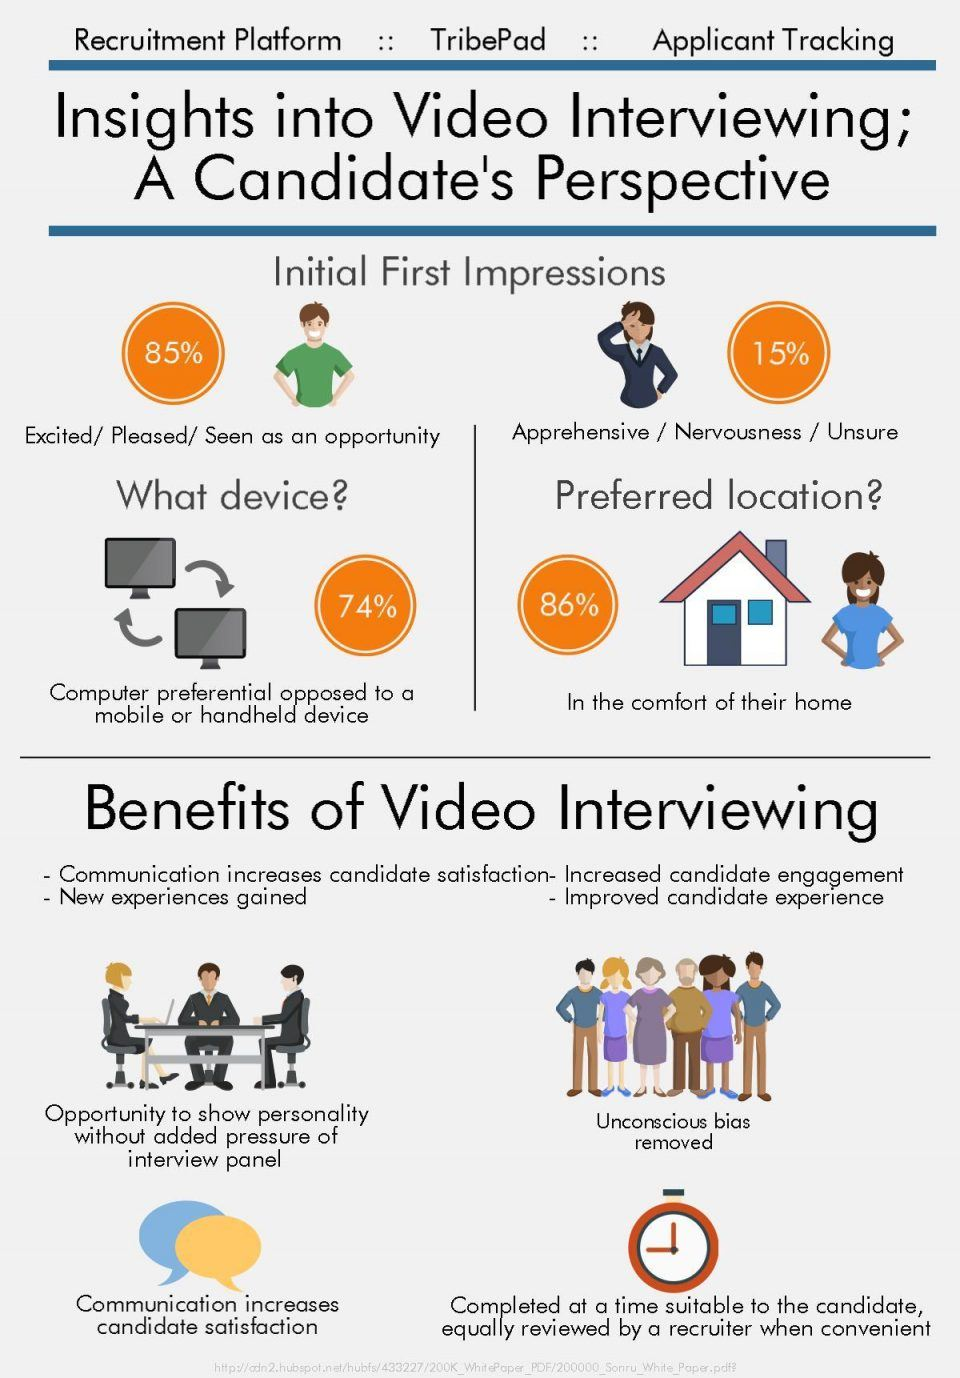 Video Interviewing from a Candidate's Perspective Infographic